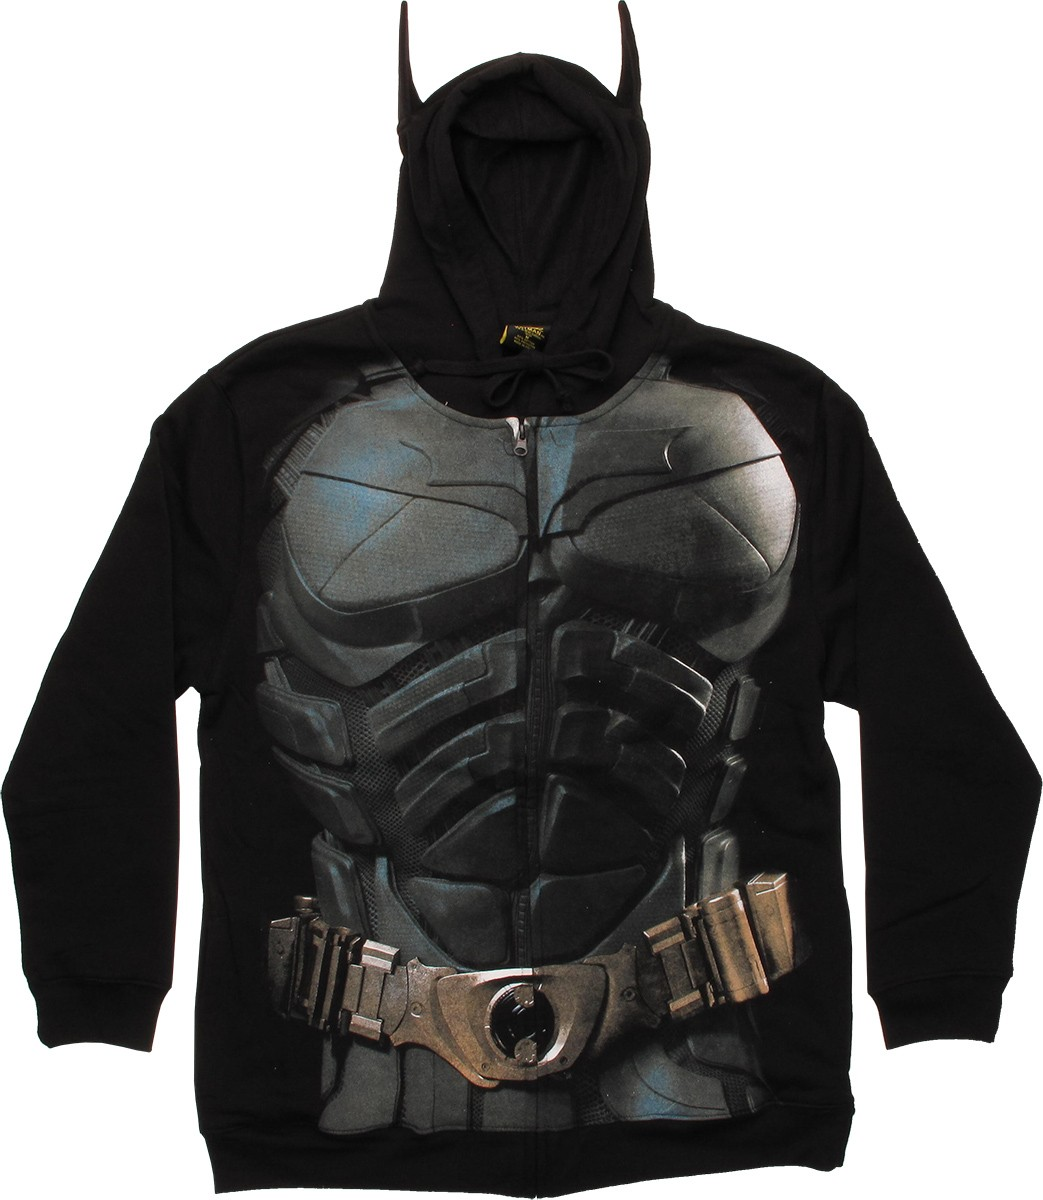 Knight armor hoodie for sale